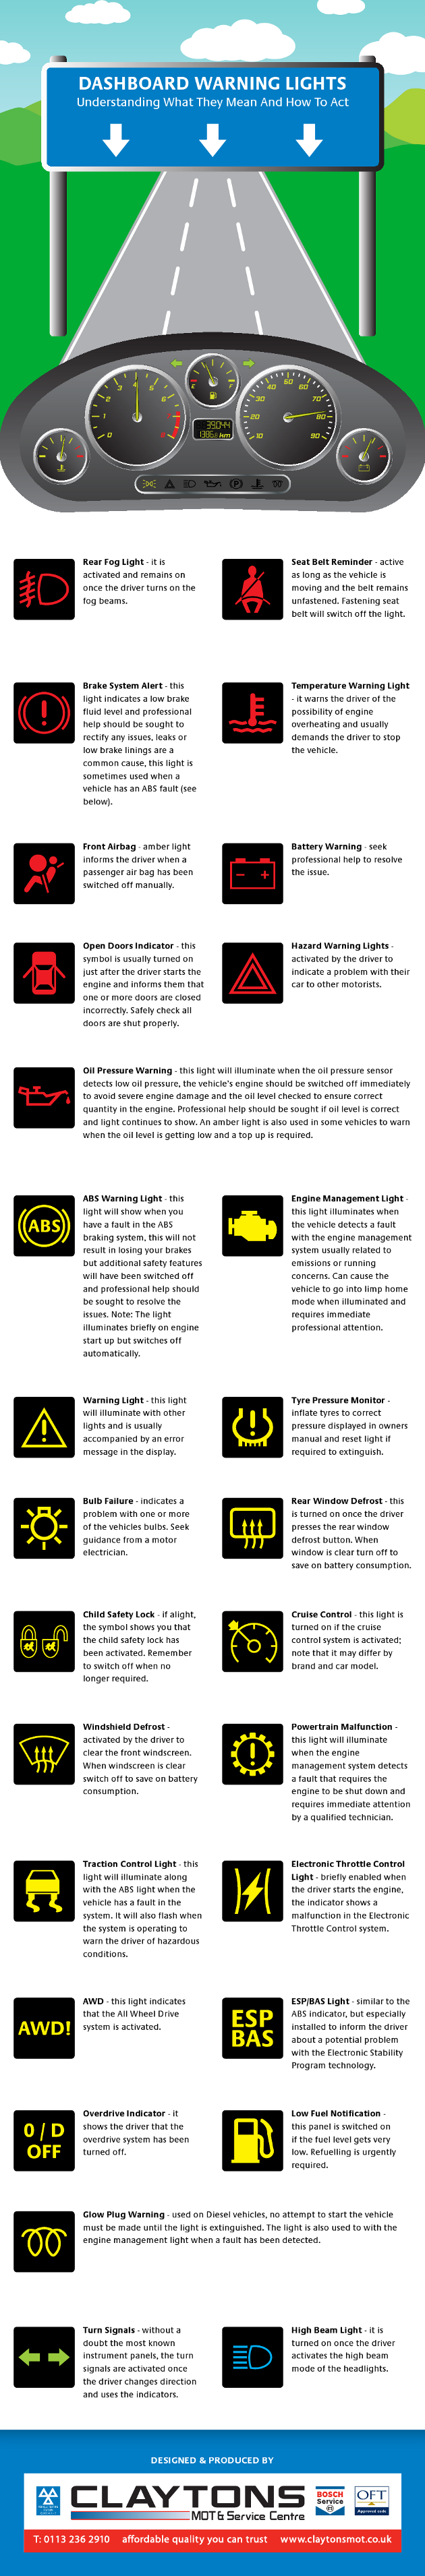 how to read the dashboard warning lights instrument panel